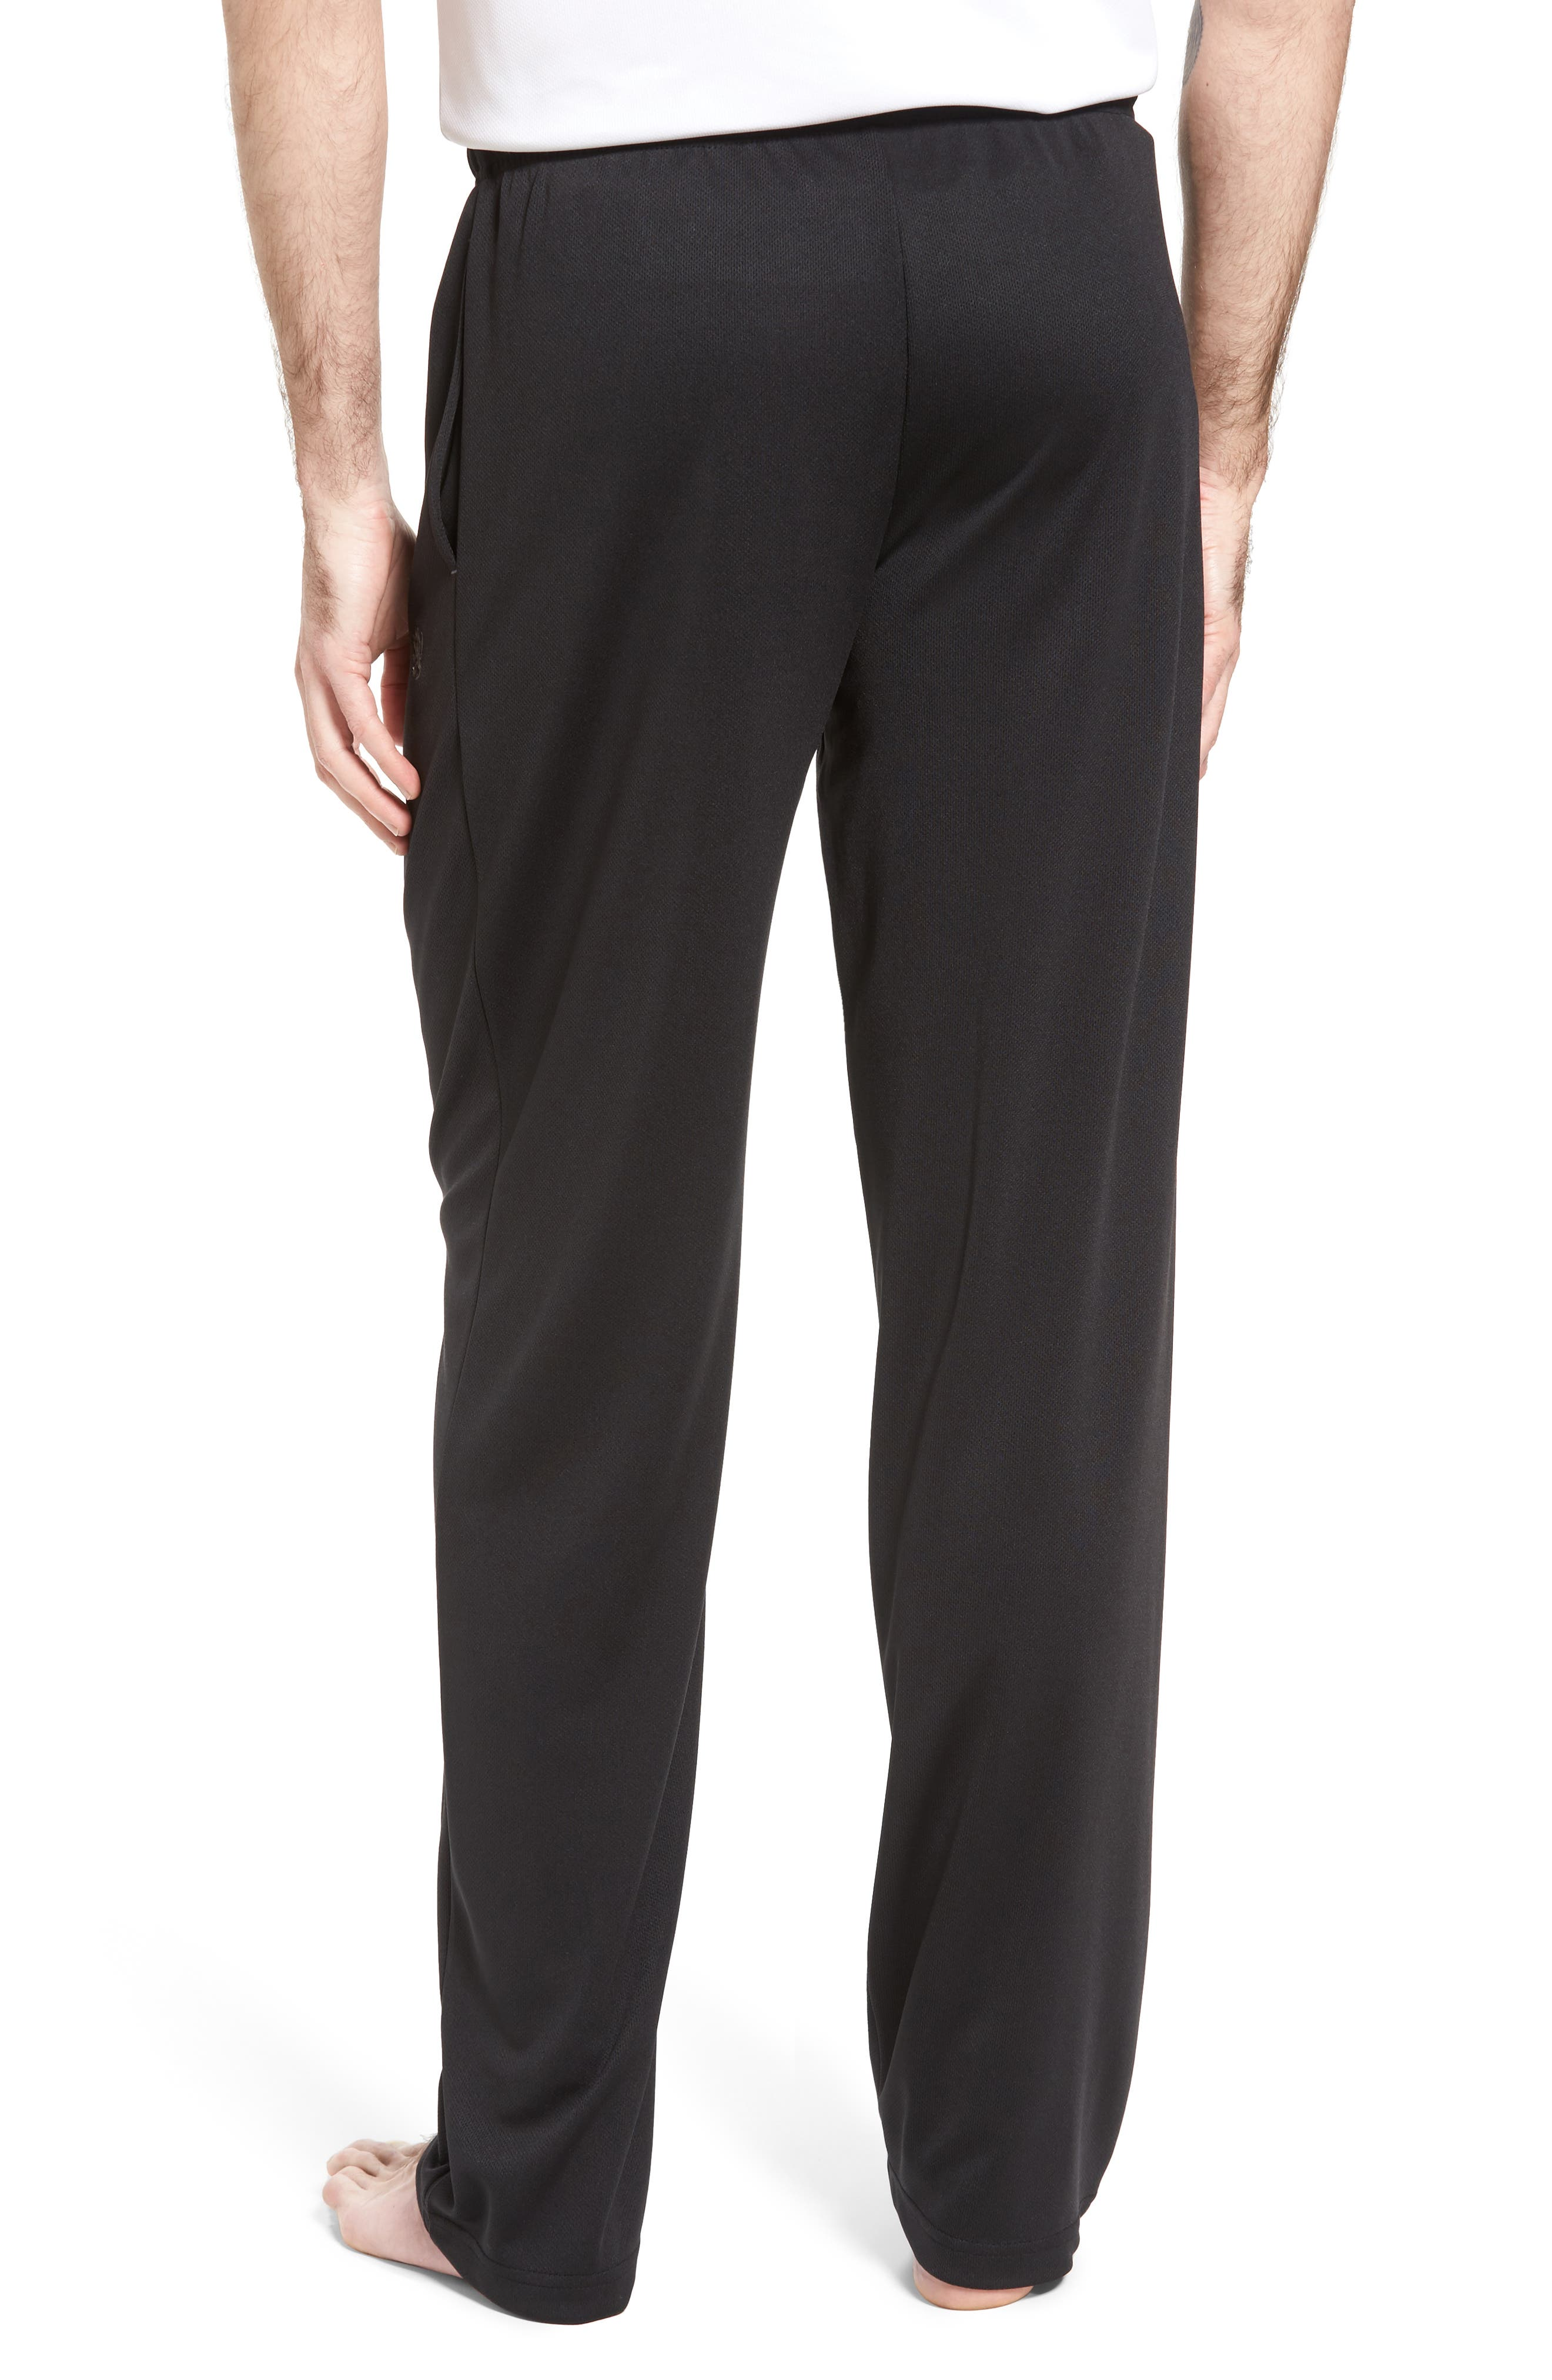 Work Out Lounge Pants,                             Alternate thumbnail 4, color,